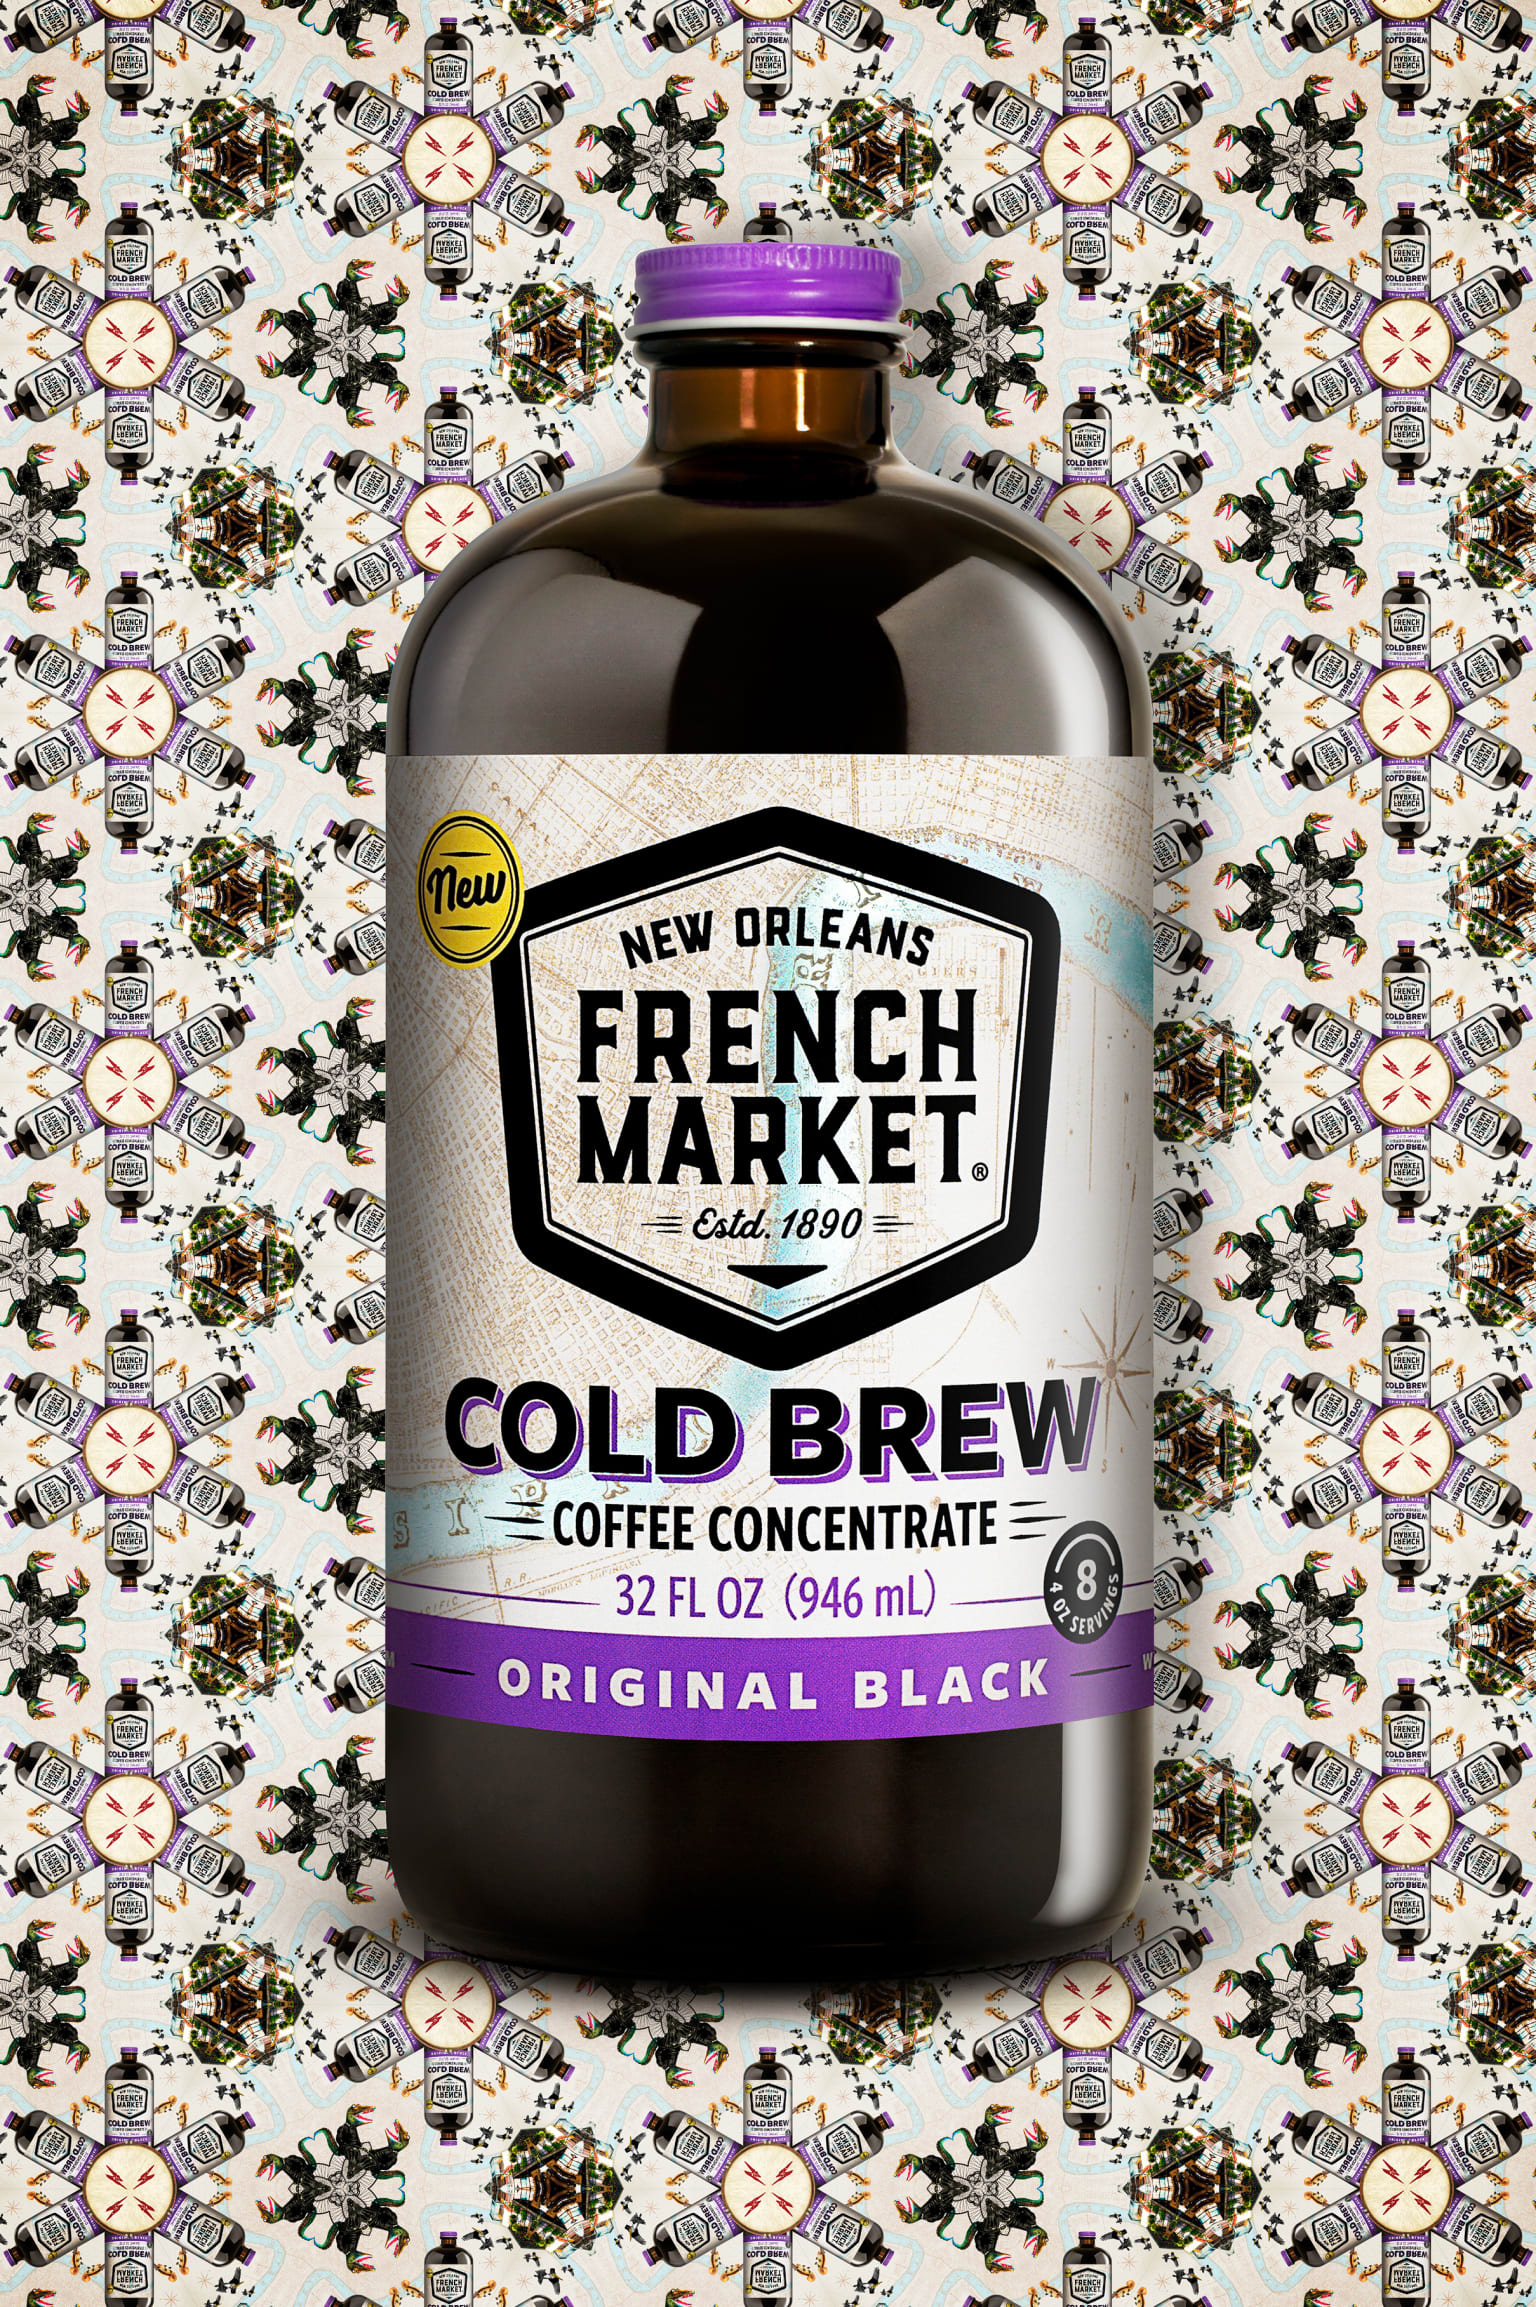 FRENCH MARKET COLD BREW COFFEE / Package Design